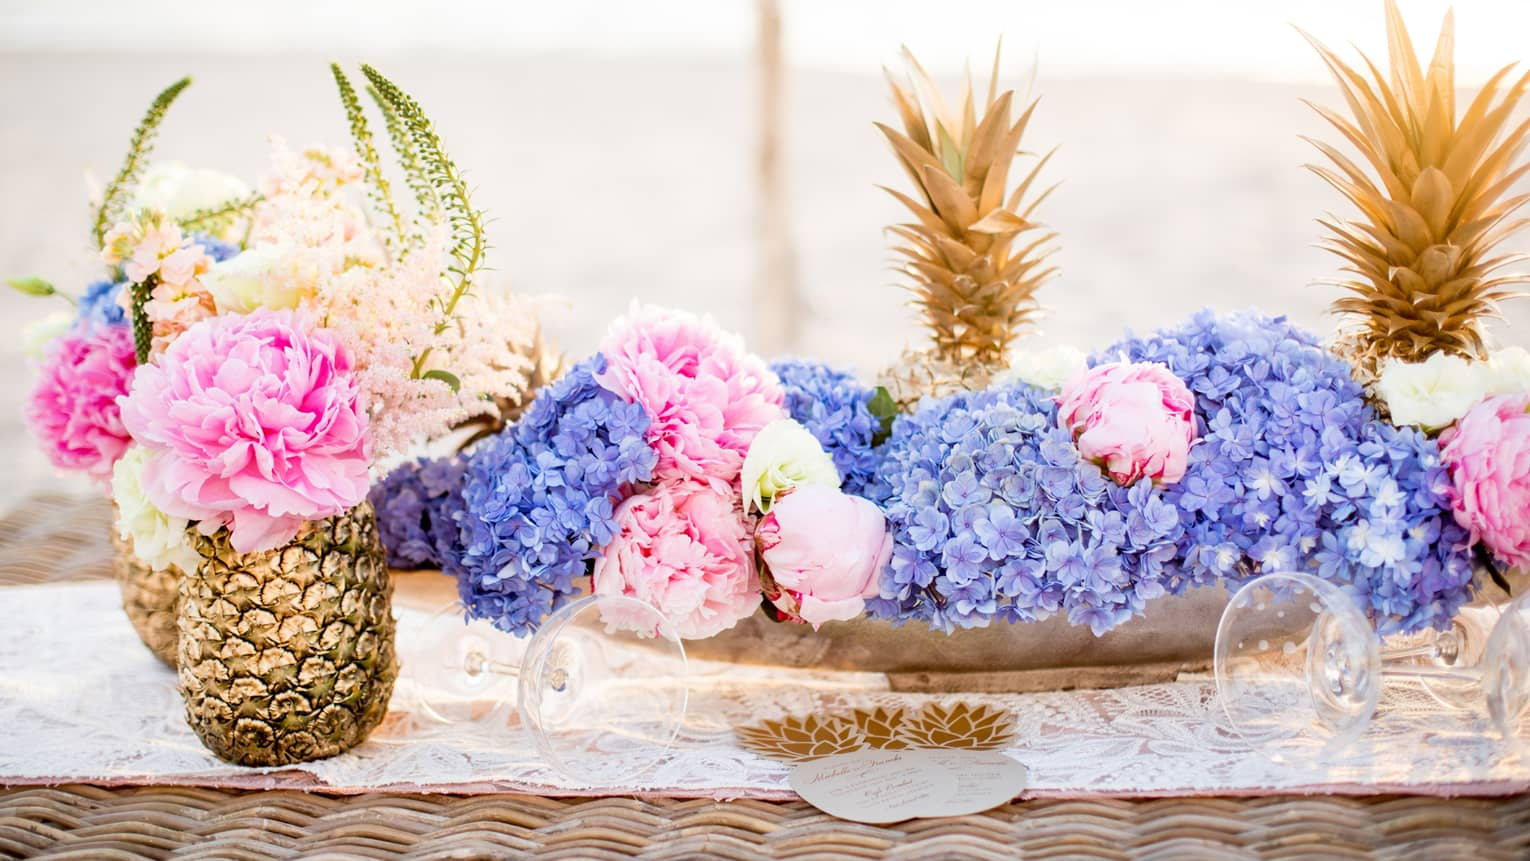 Vibrant pink and purple flowers are displayed around pineapples